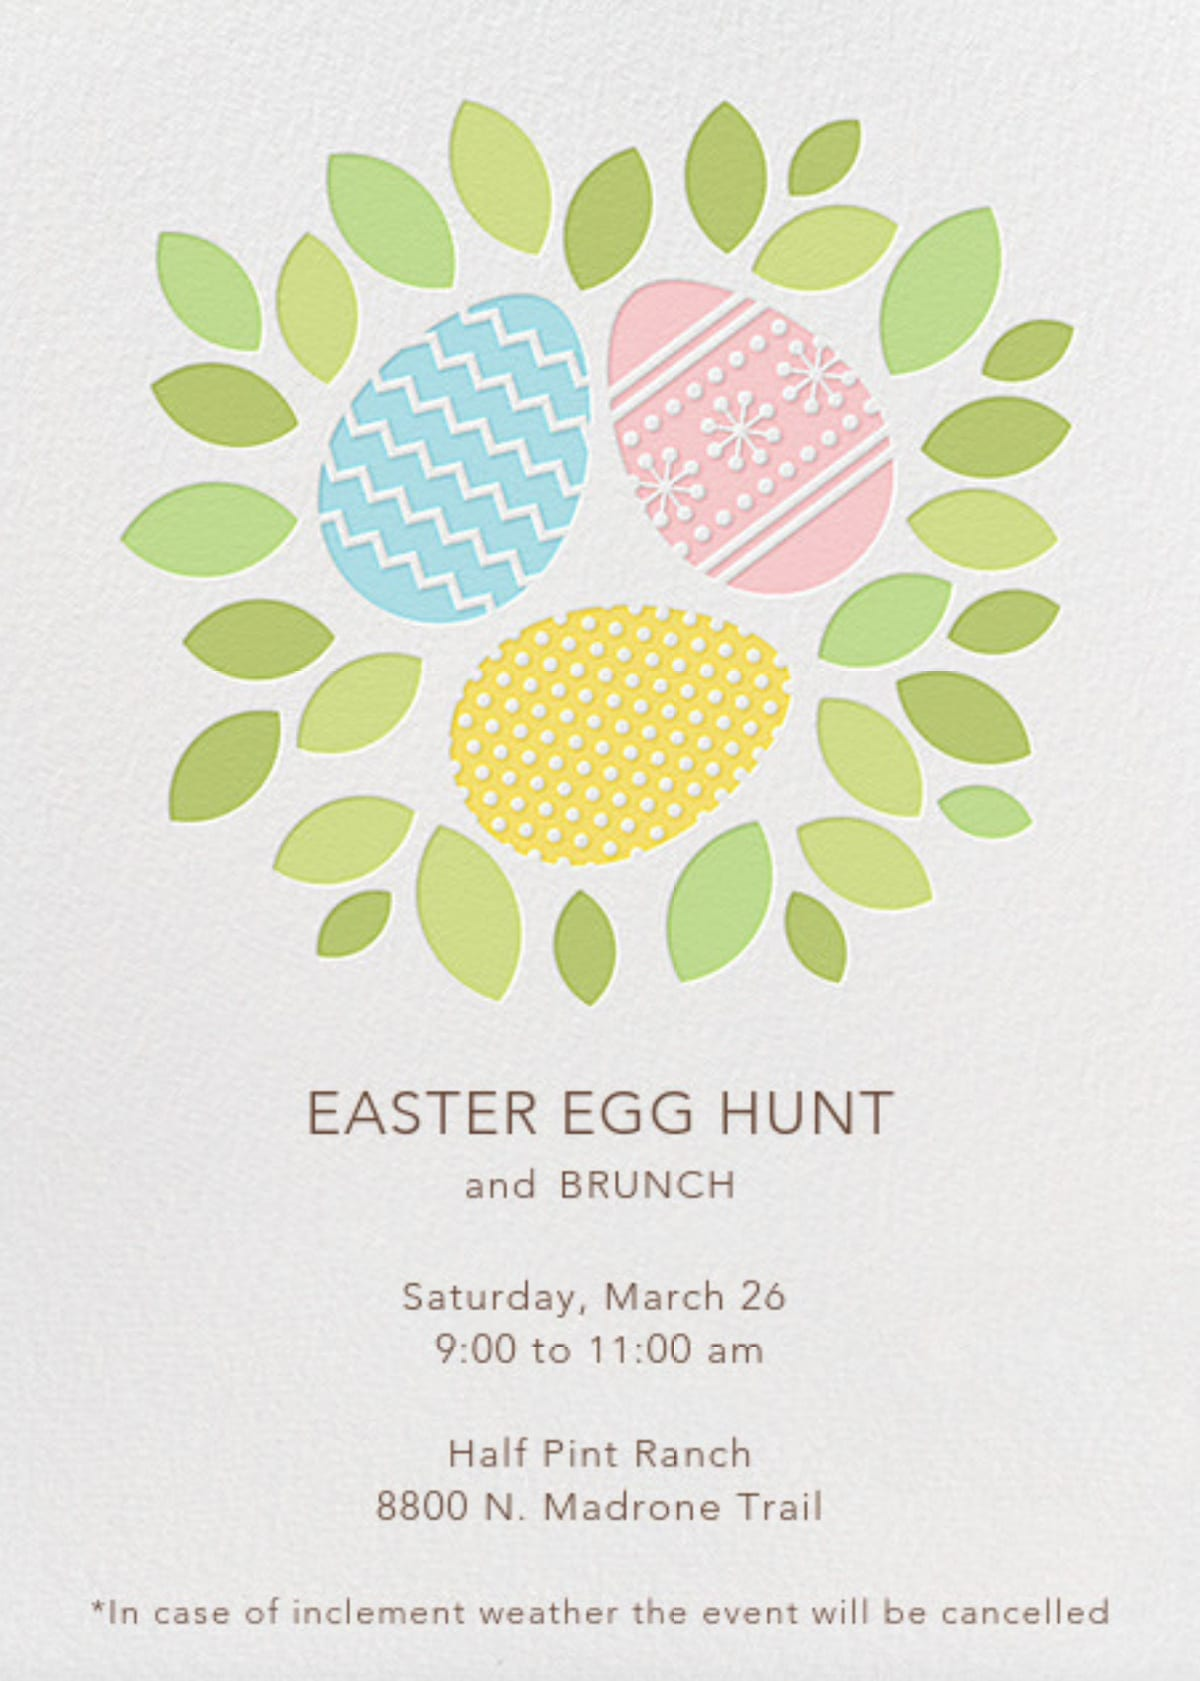 Easter Egg Hunt - March 26th - Half Pint Ranch, 8800 North Madrone Trail, Austin, Texas